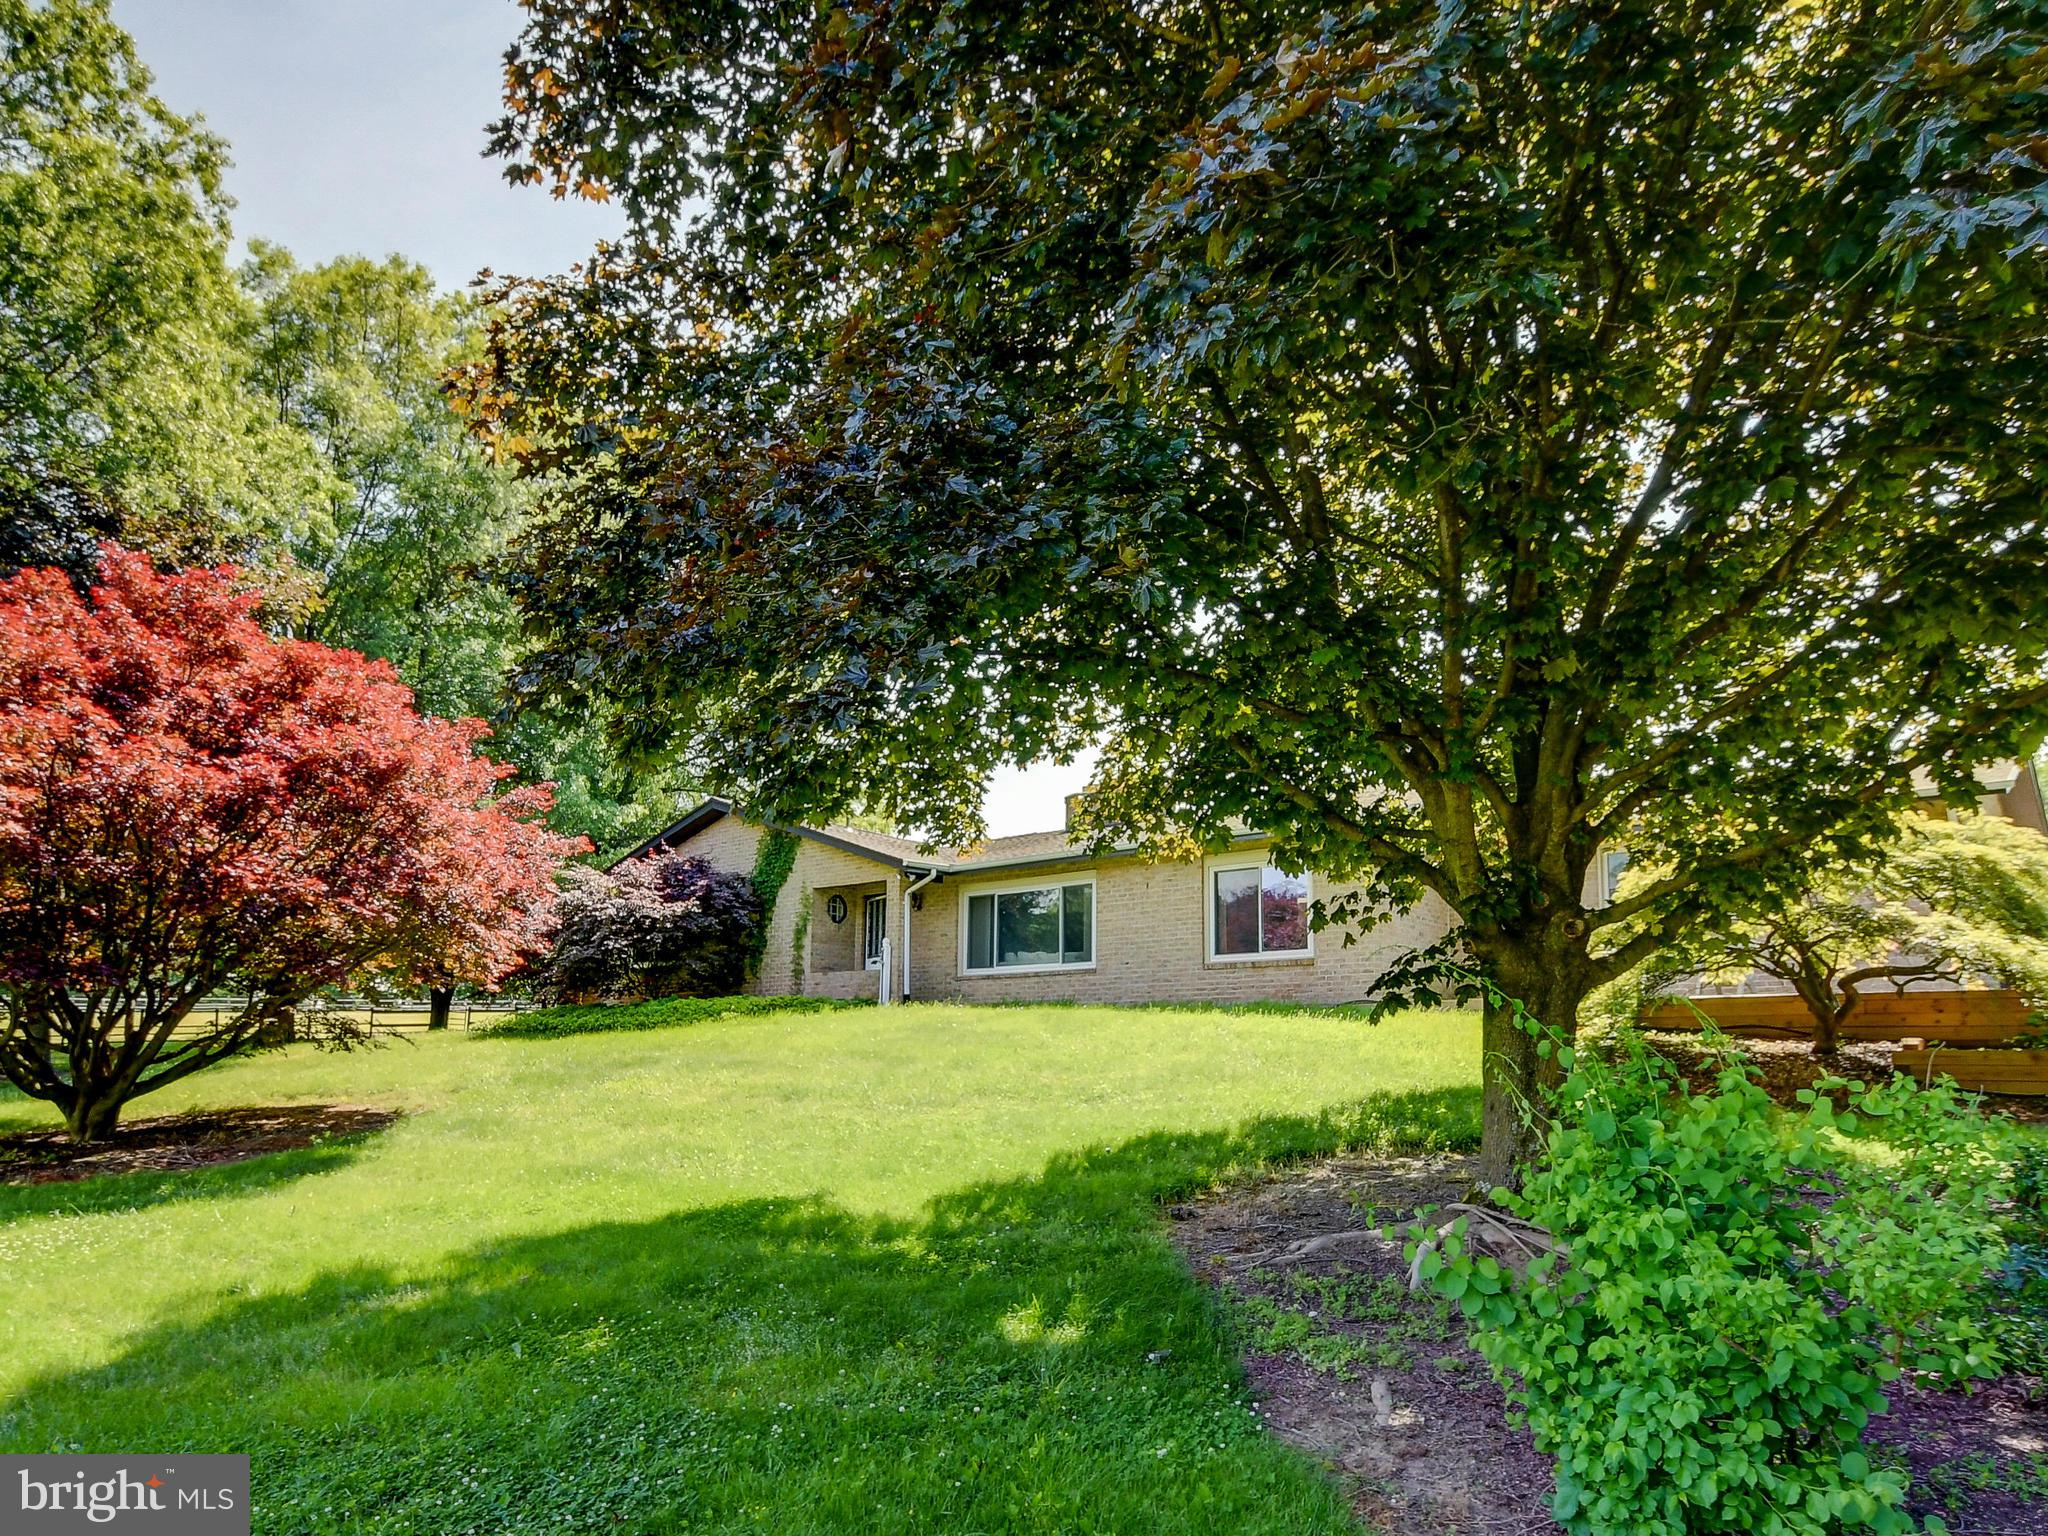 4420 MILLERS STATION Rd, Millers, MD, 21102